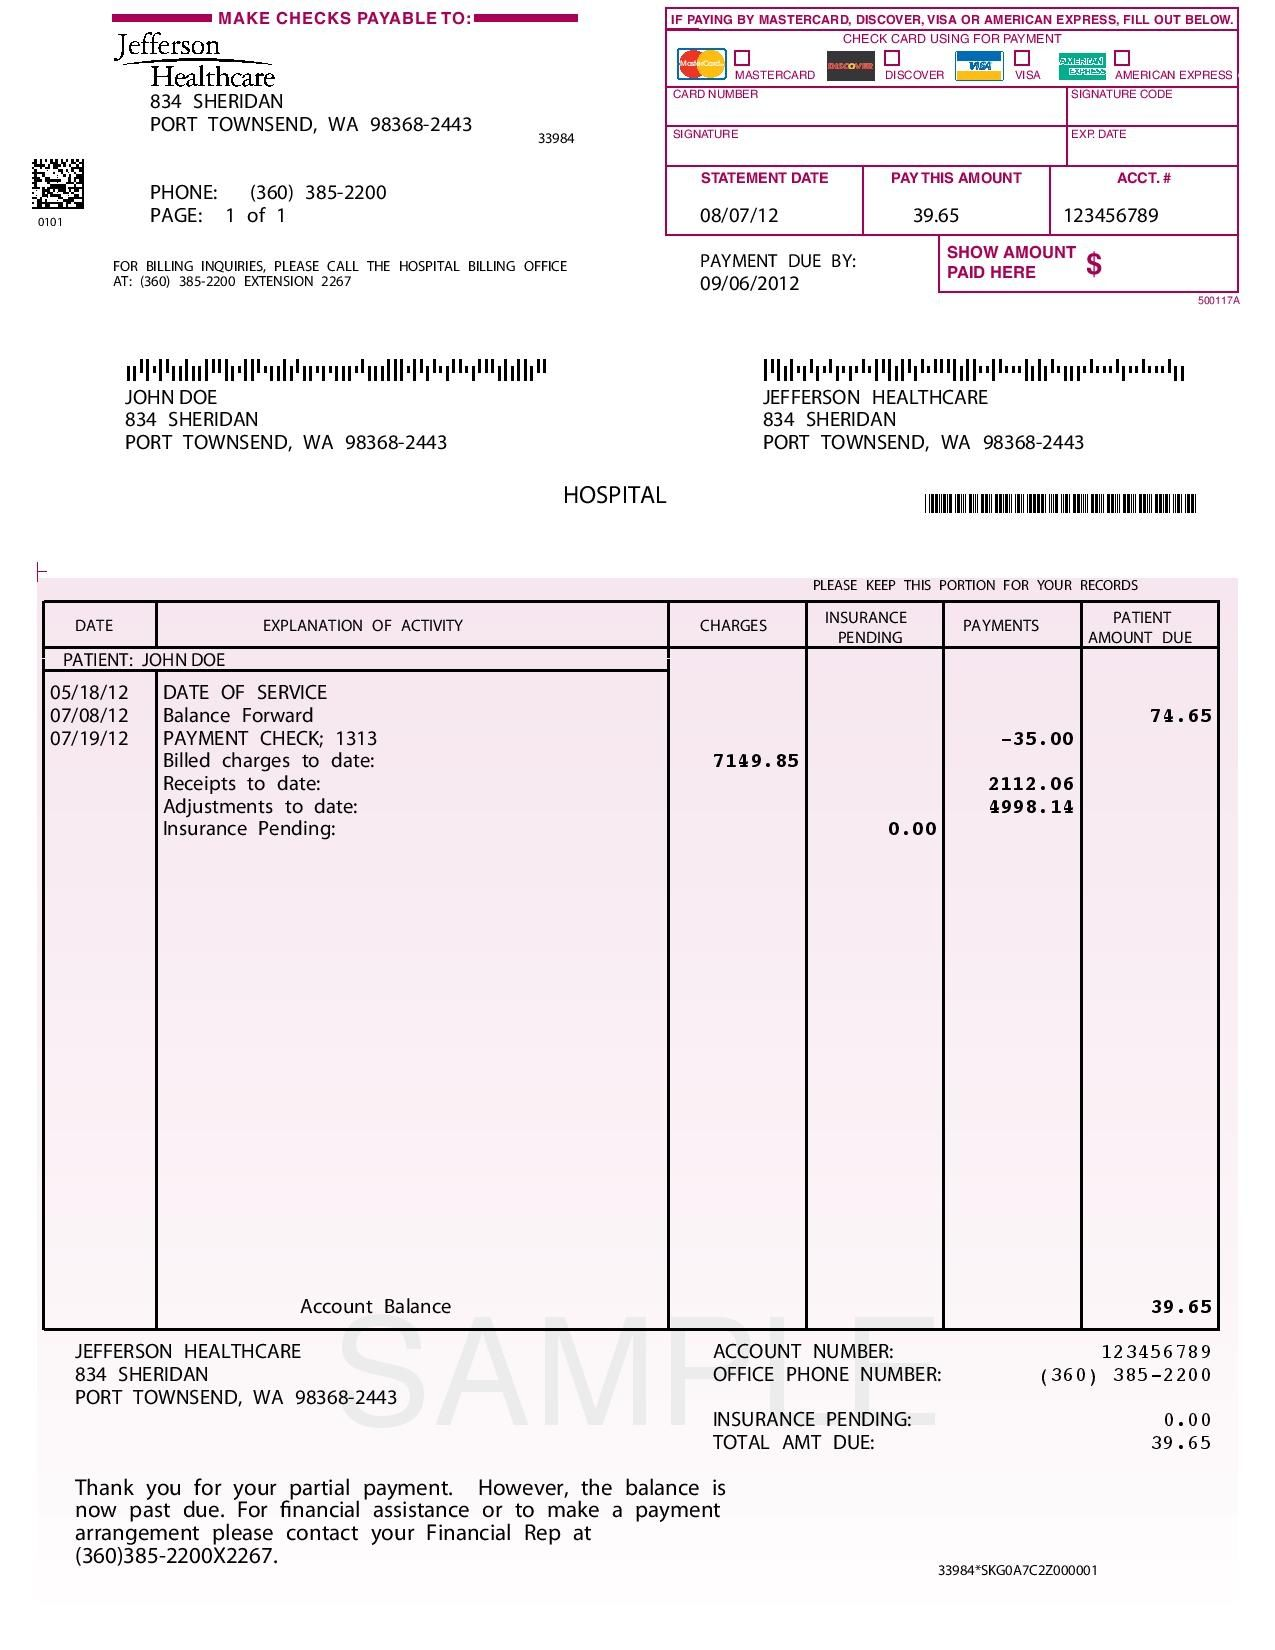 10 best images of sample of invoice for payment sample invoice payment terms on an invoice - Sample Invoices